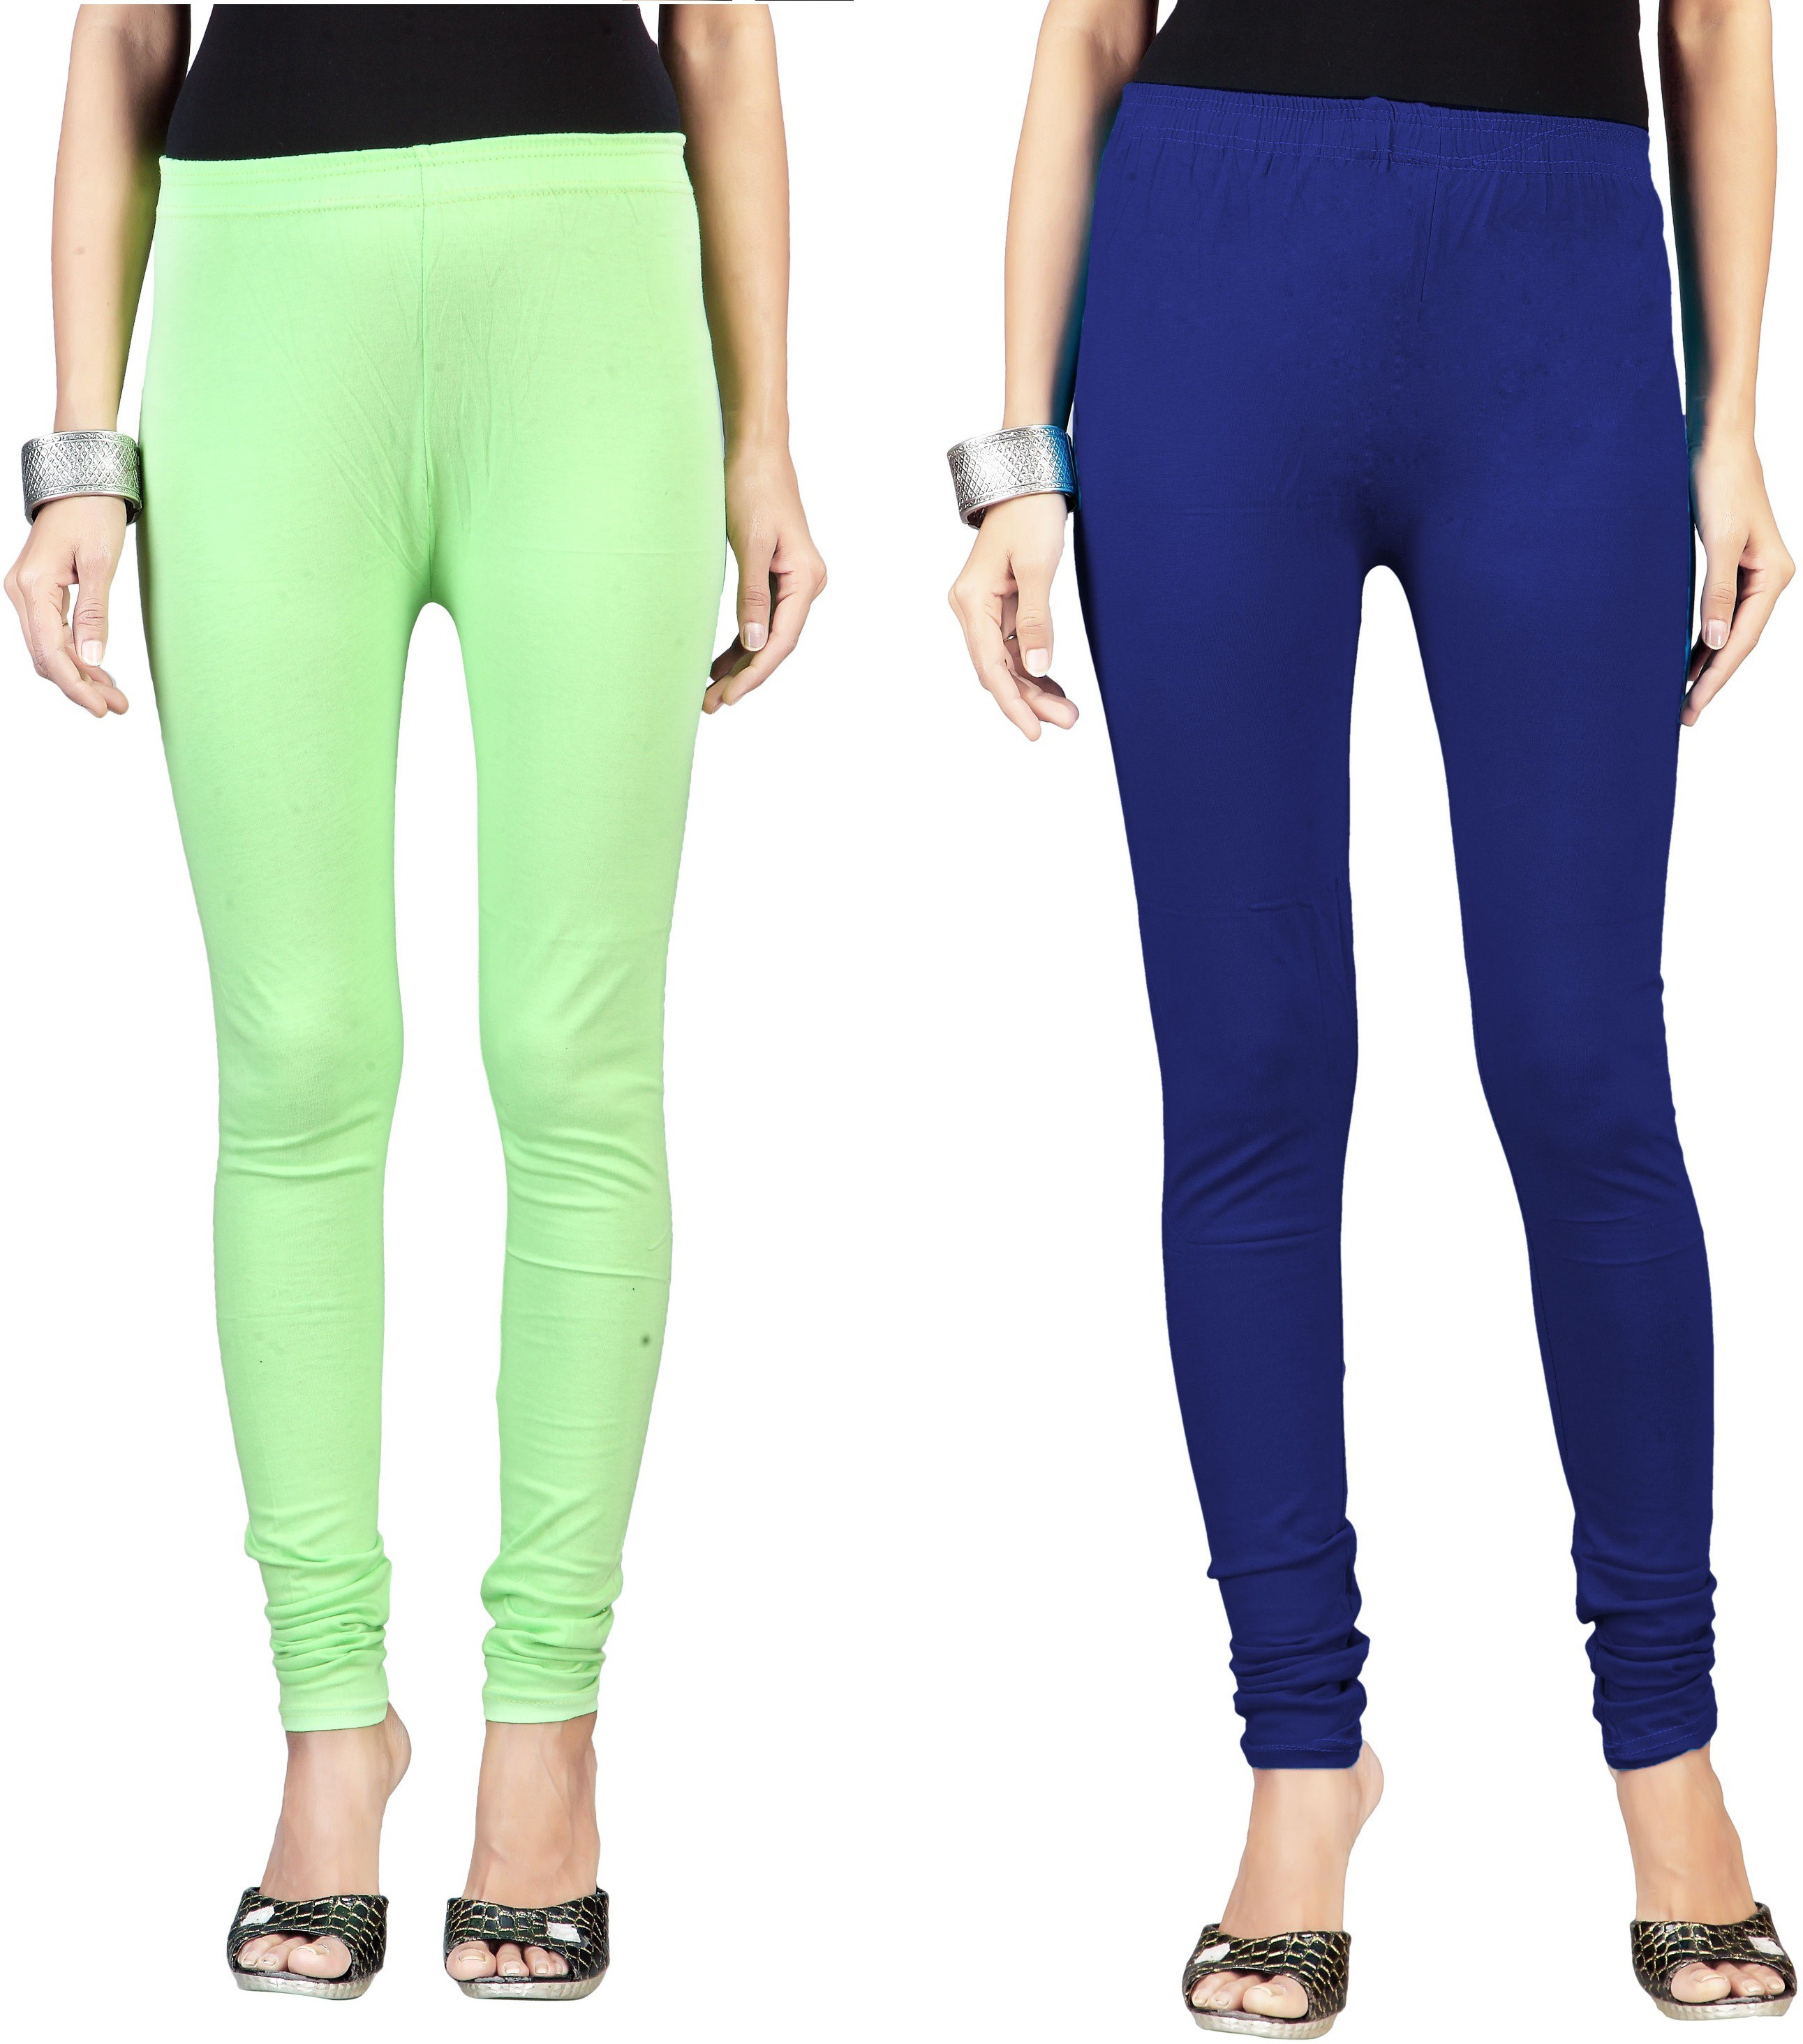 Ambrai Womens Light Green, Dark Blue Leggings(Pack of 2)